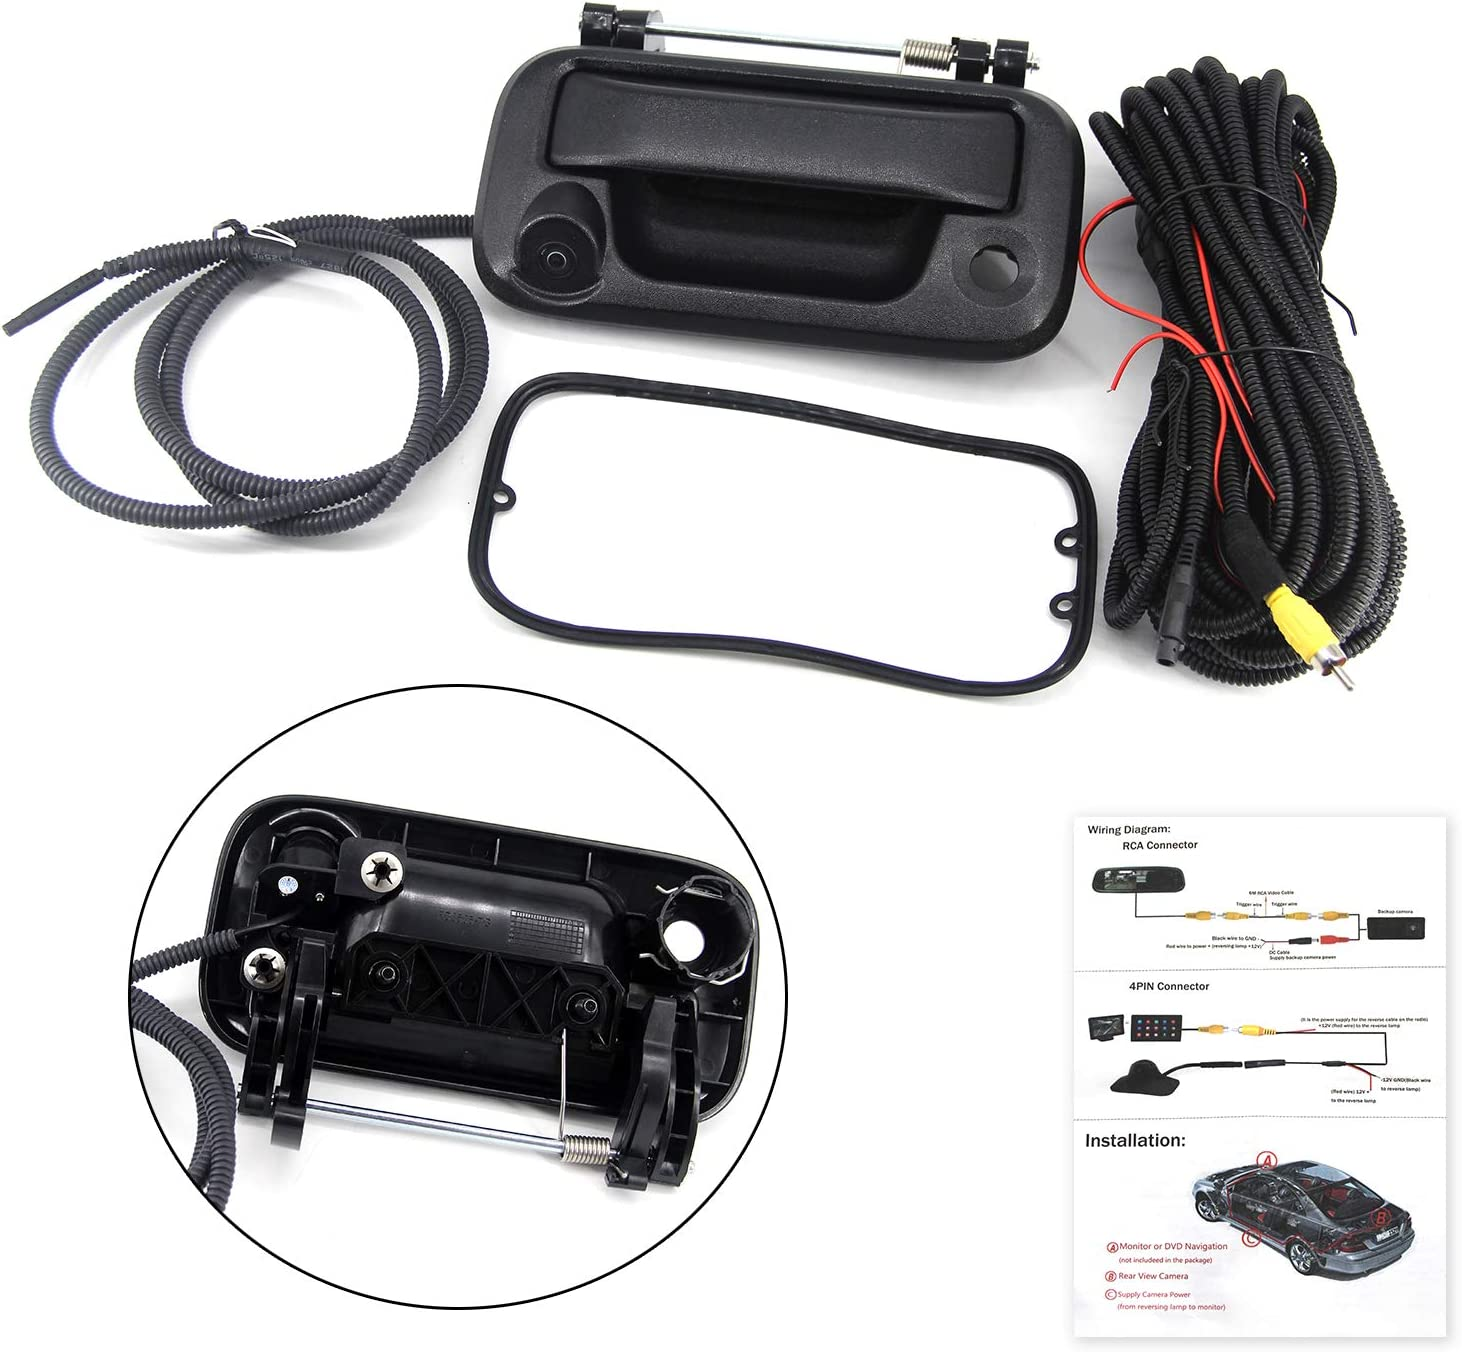 FEXON Rear View Camera Backup Camera Replacement for Ford F150 2005-2014 Ford F250 F350 F450 F550 2008-2016 Tailgate Handle Car Camera